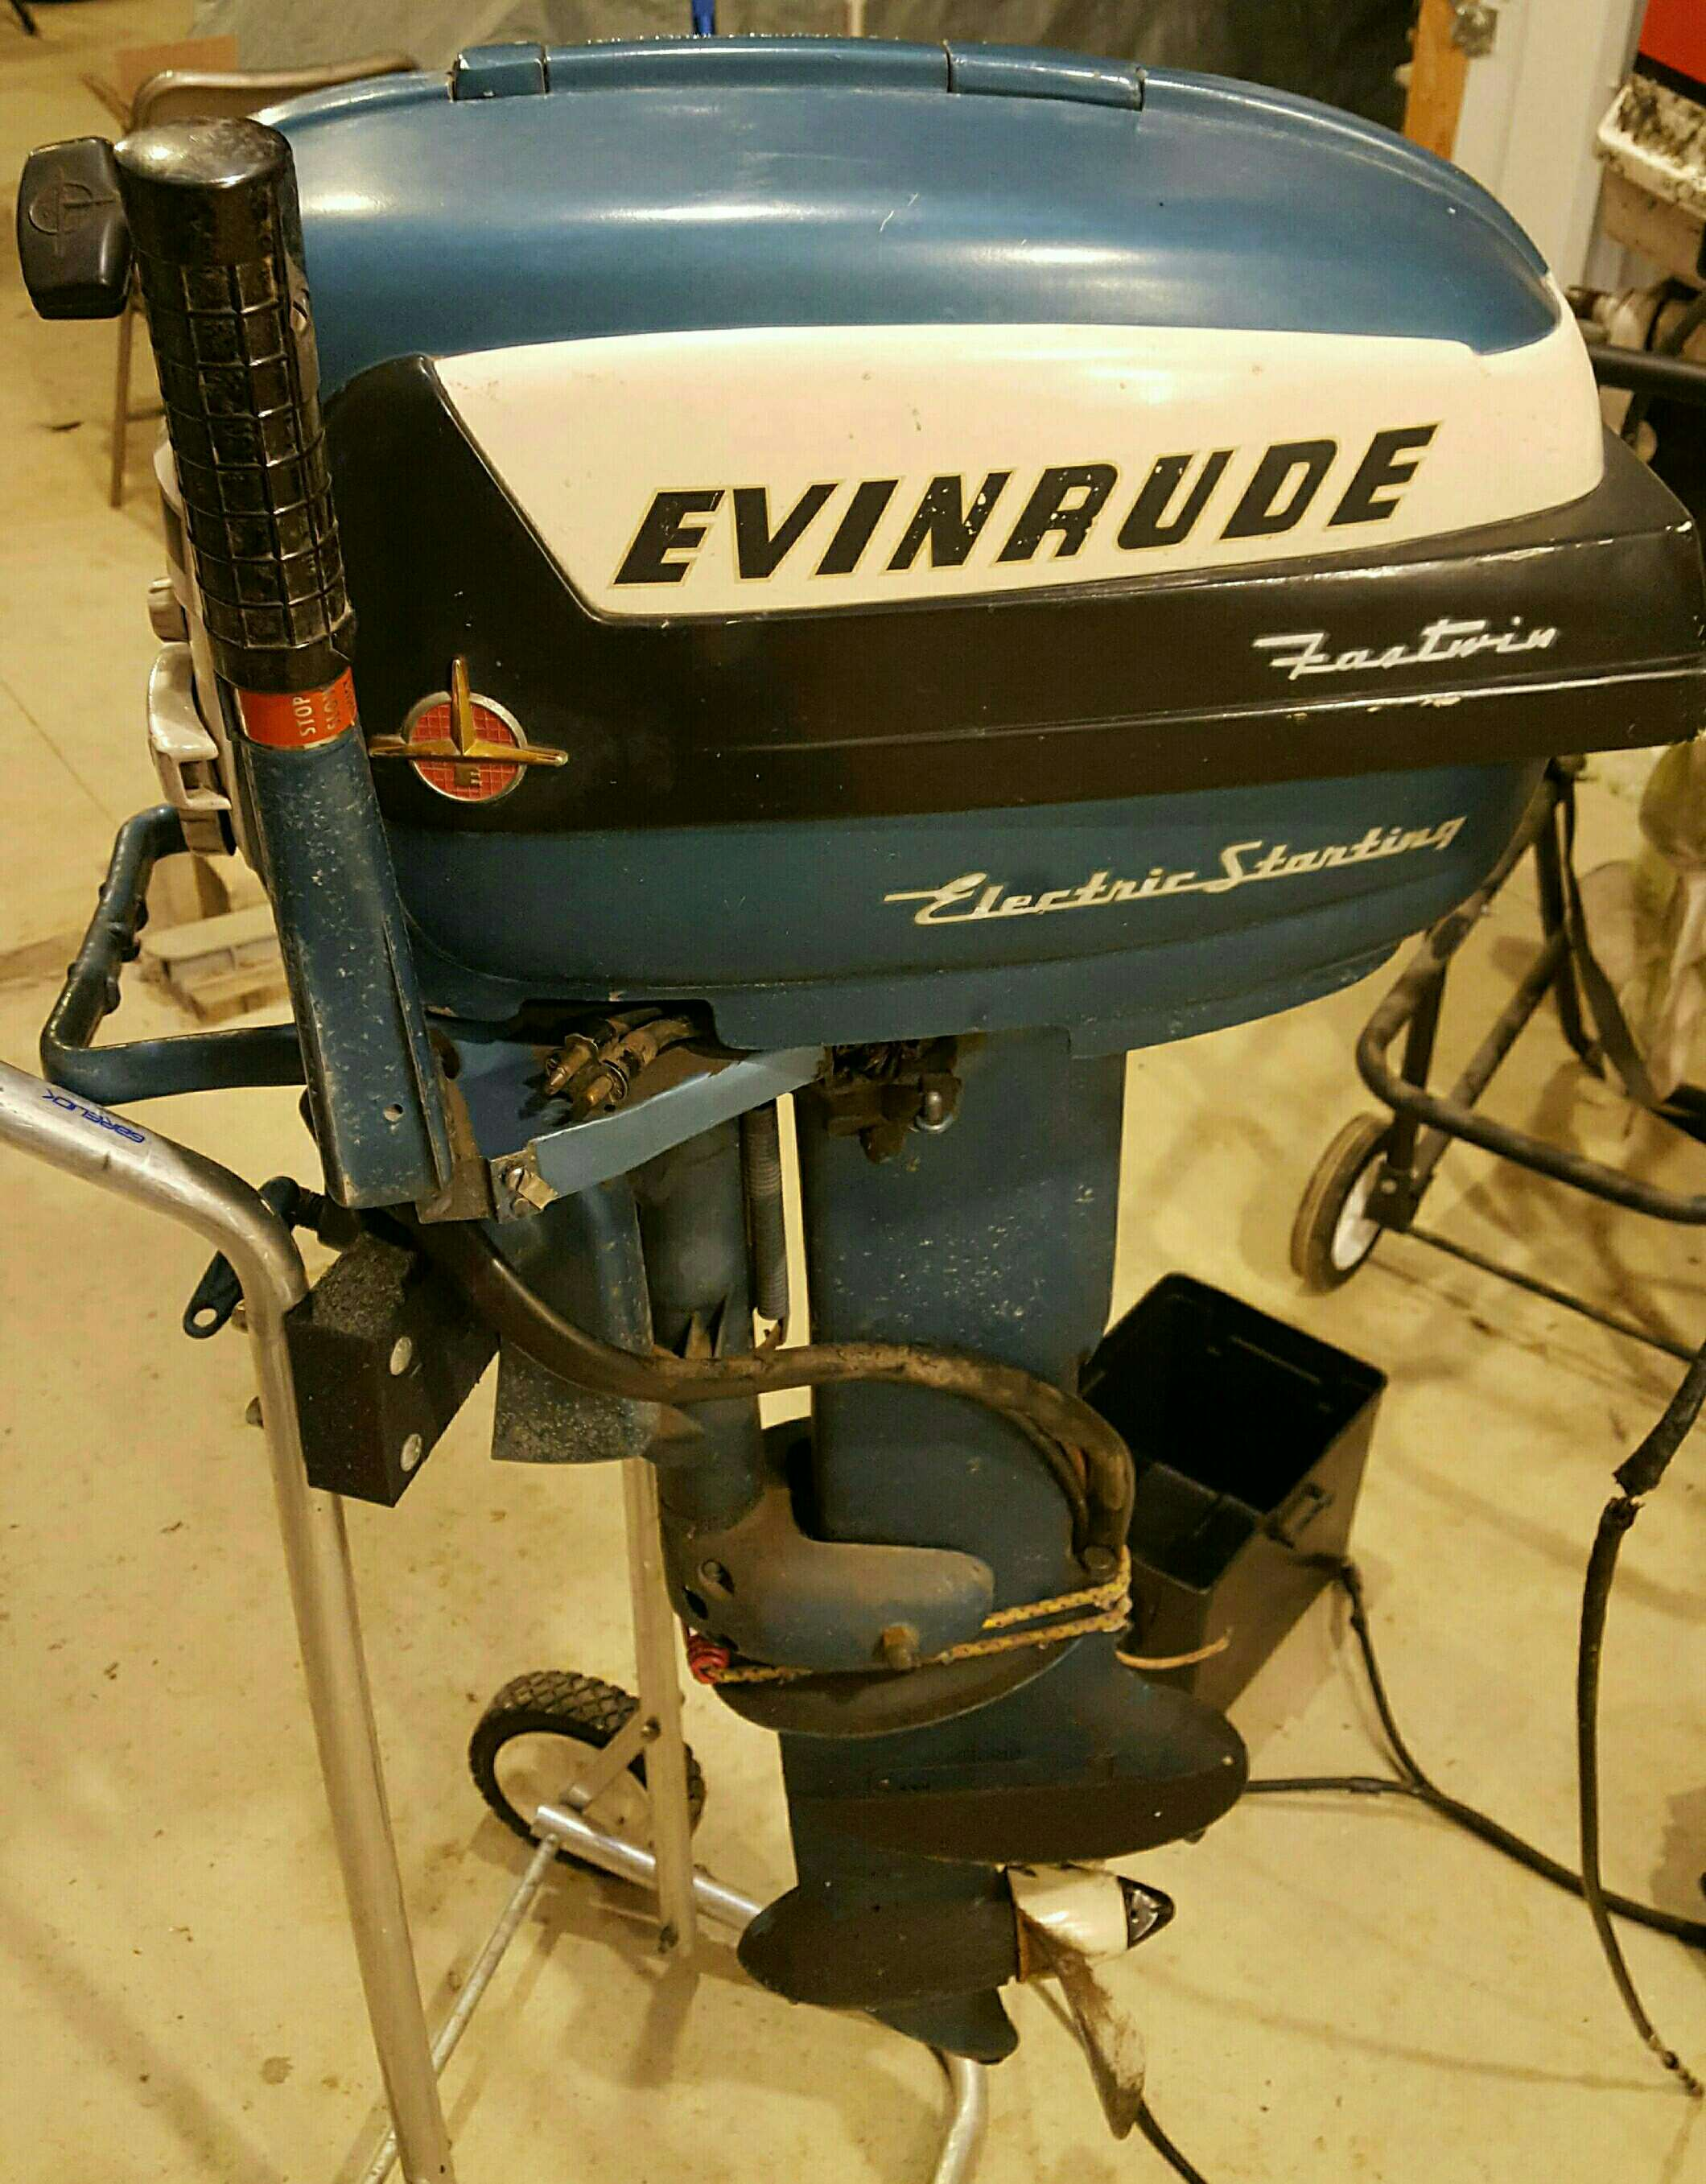 1956 Evinrude Fastwin 15 Electric Starting wiring – Antique